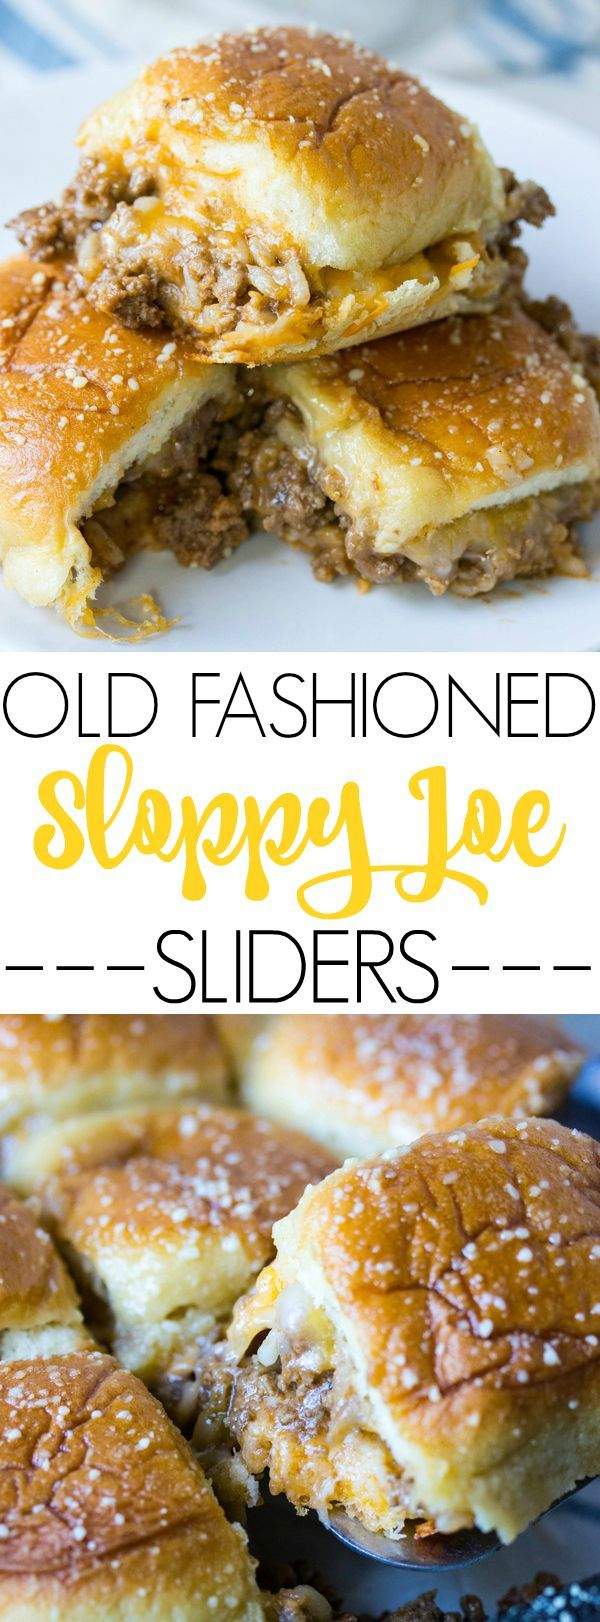 Comfort food is switched up to make these delicious Old Fashioned Sloppy Joe Sliders.